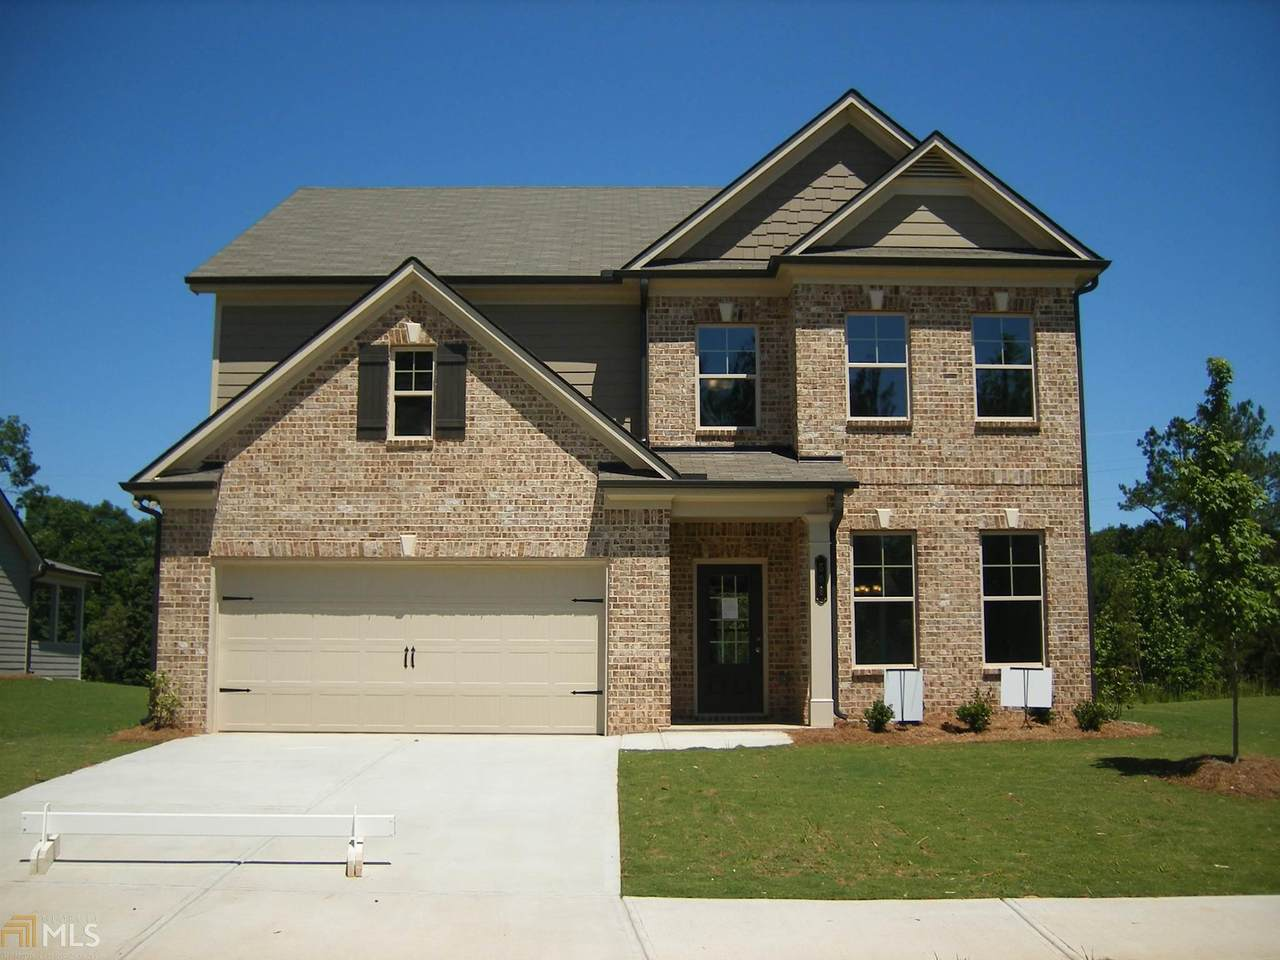 508 Gadwall Cir - Photo 1